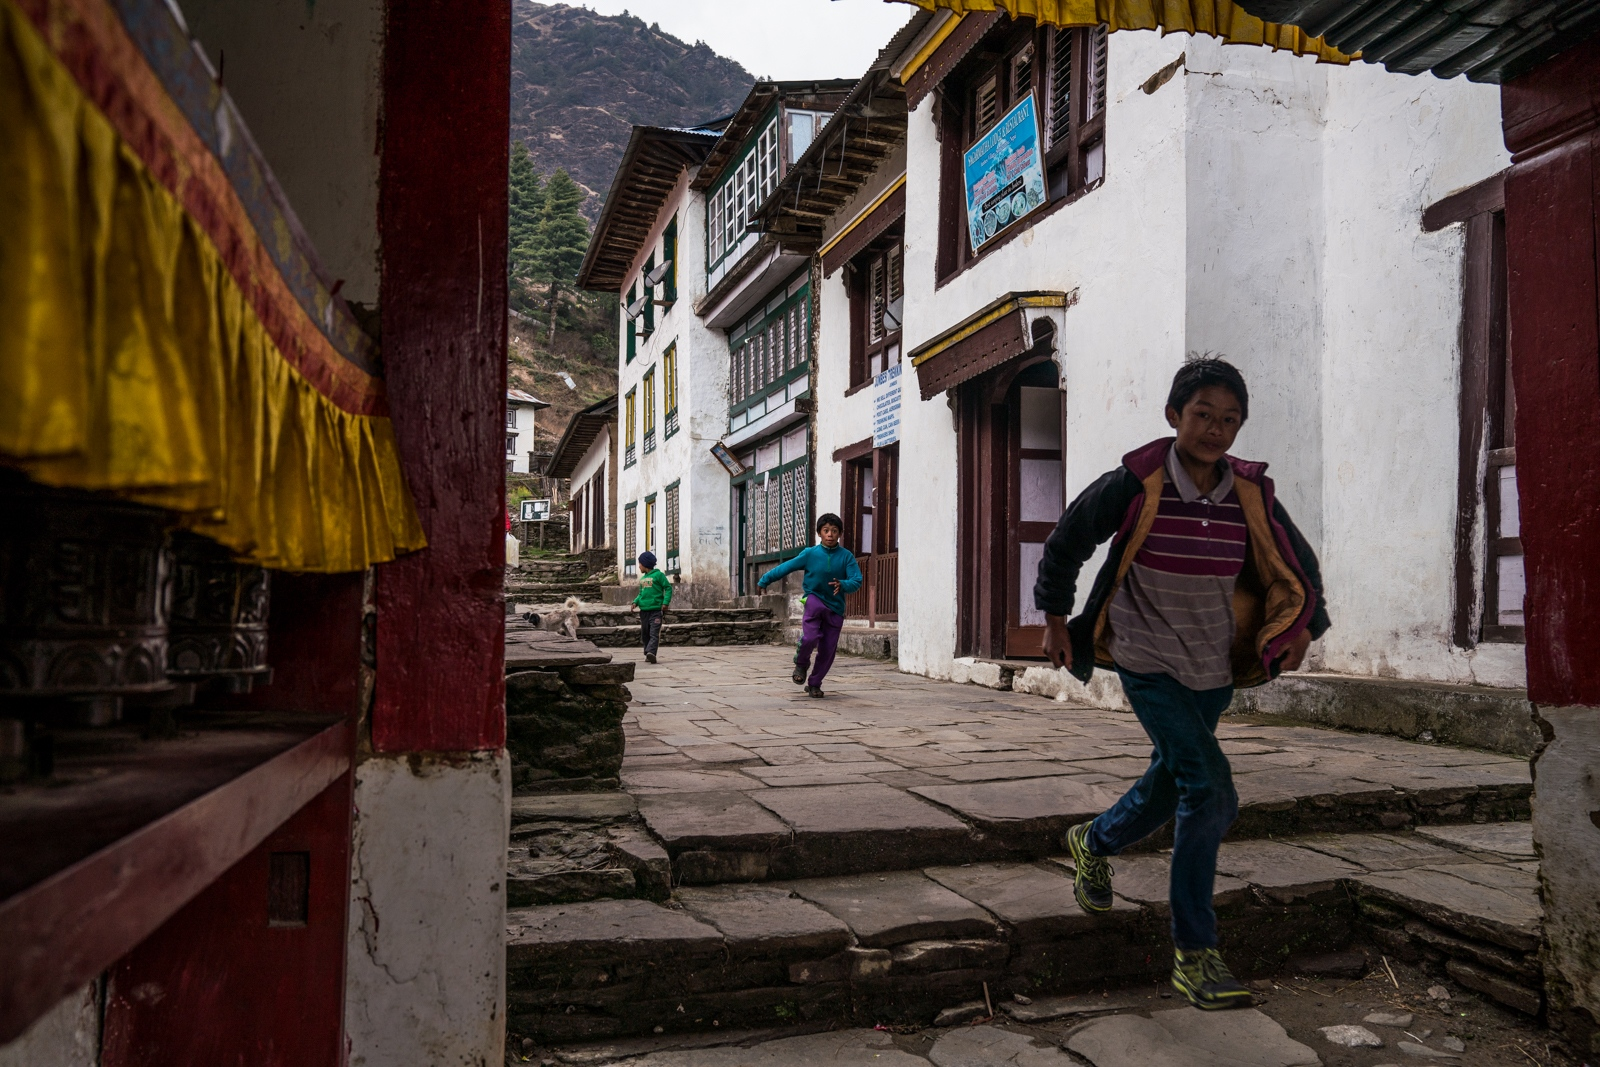 Children run through the streets of Junbesi in the Himalayan foothills.